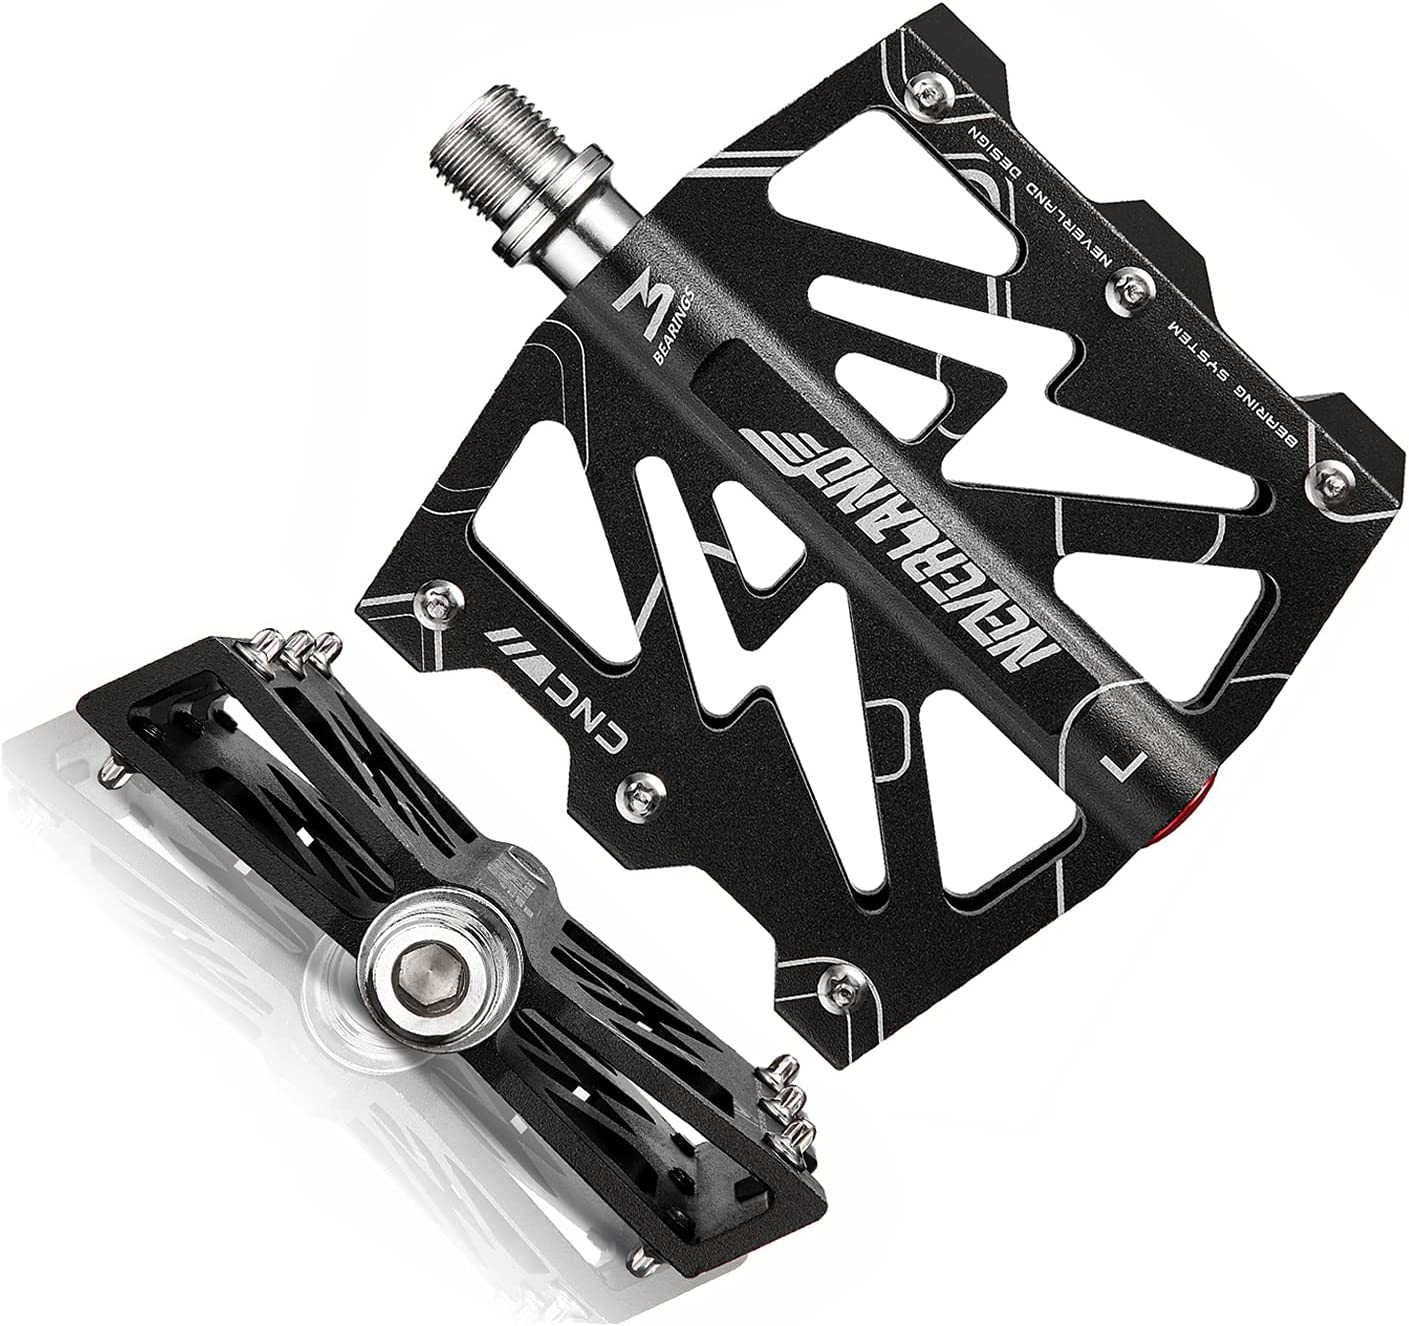 NEVERLAND Mountain Road Bike High quality Pedals Bicycle of Aluminum Super Special SALE held A